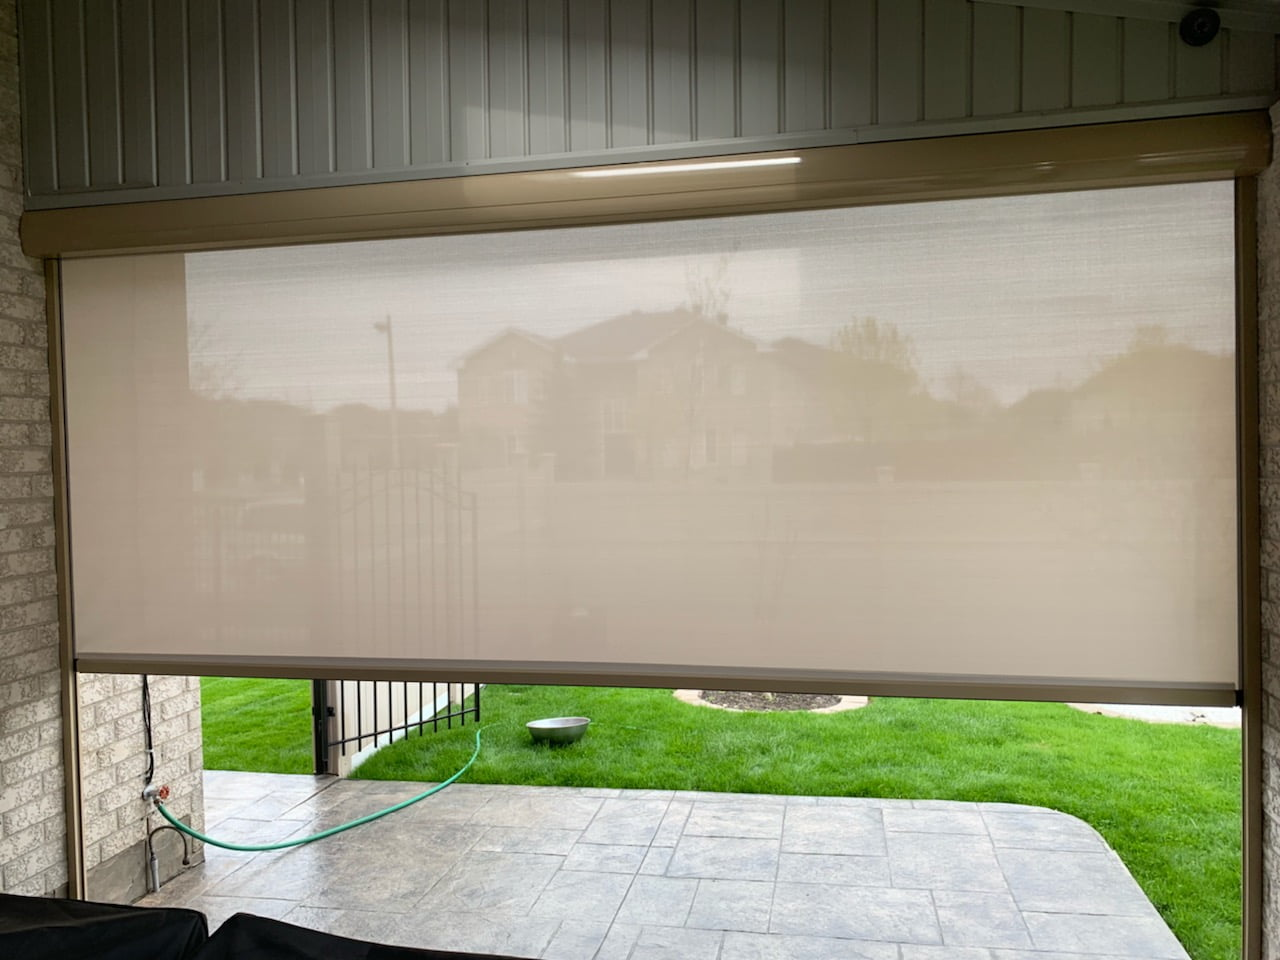 Automated Blinds installed for home convenience